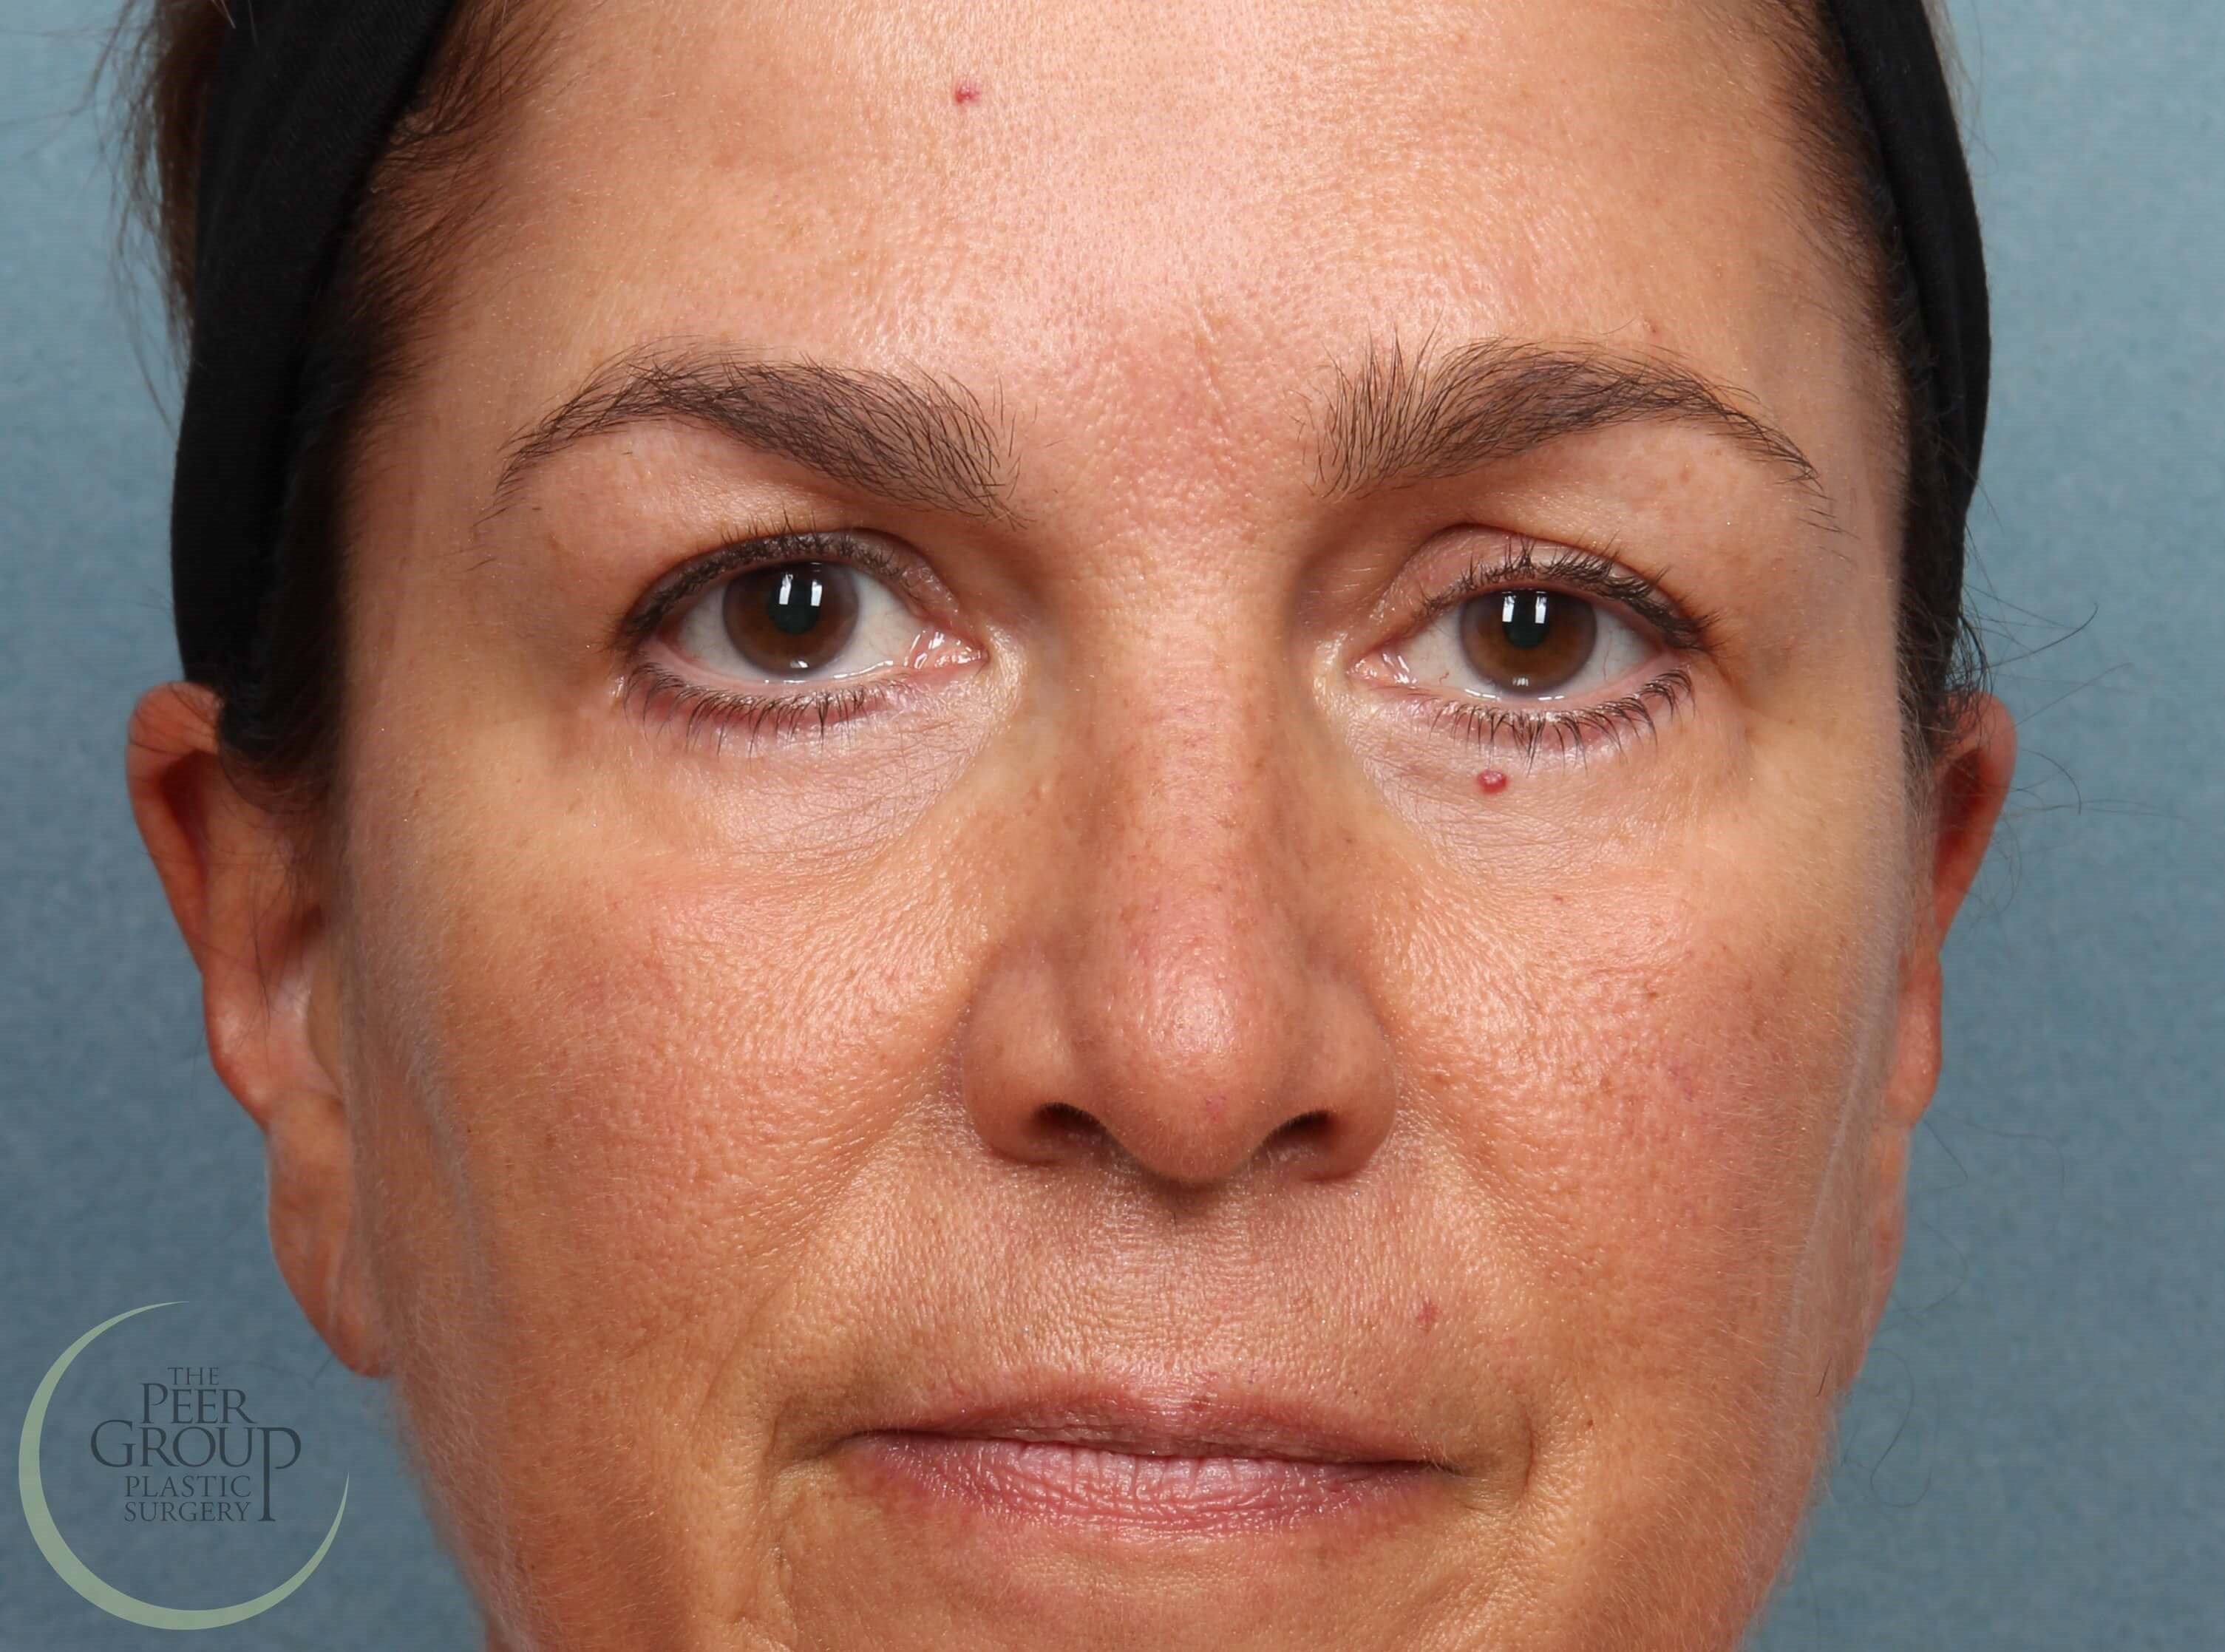 NJ Eyelid Lift Front View After Lower Eyelid Lift